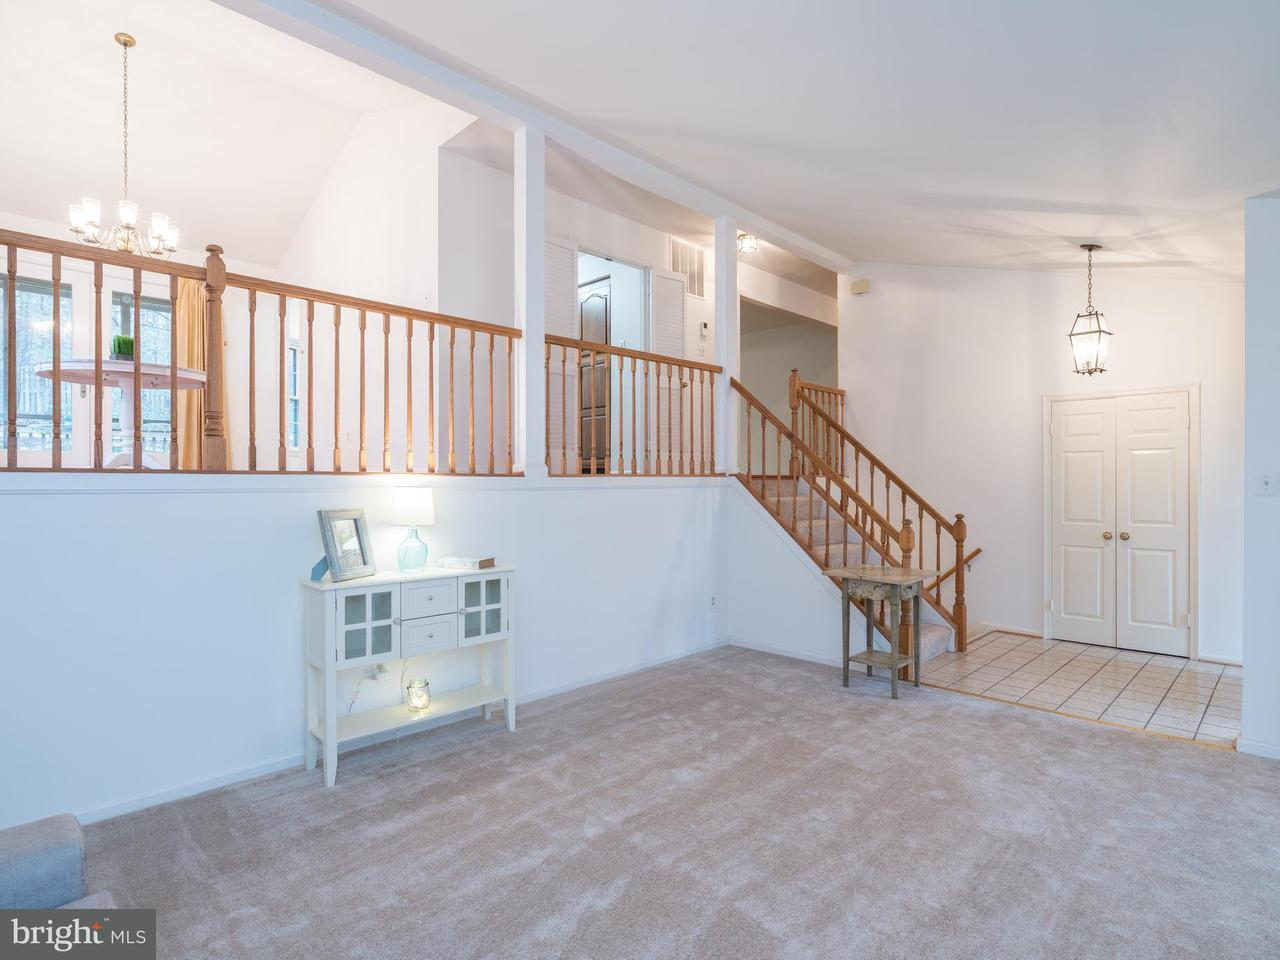 Additional photo for property listing at 7411 Carath Court 7411 Carath Court Springfield, Virginia 22153 United States